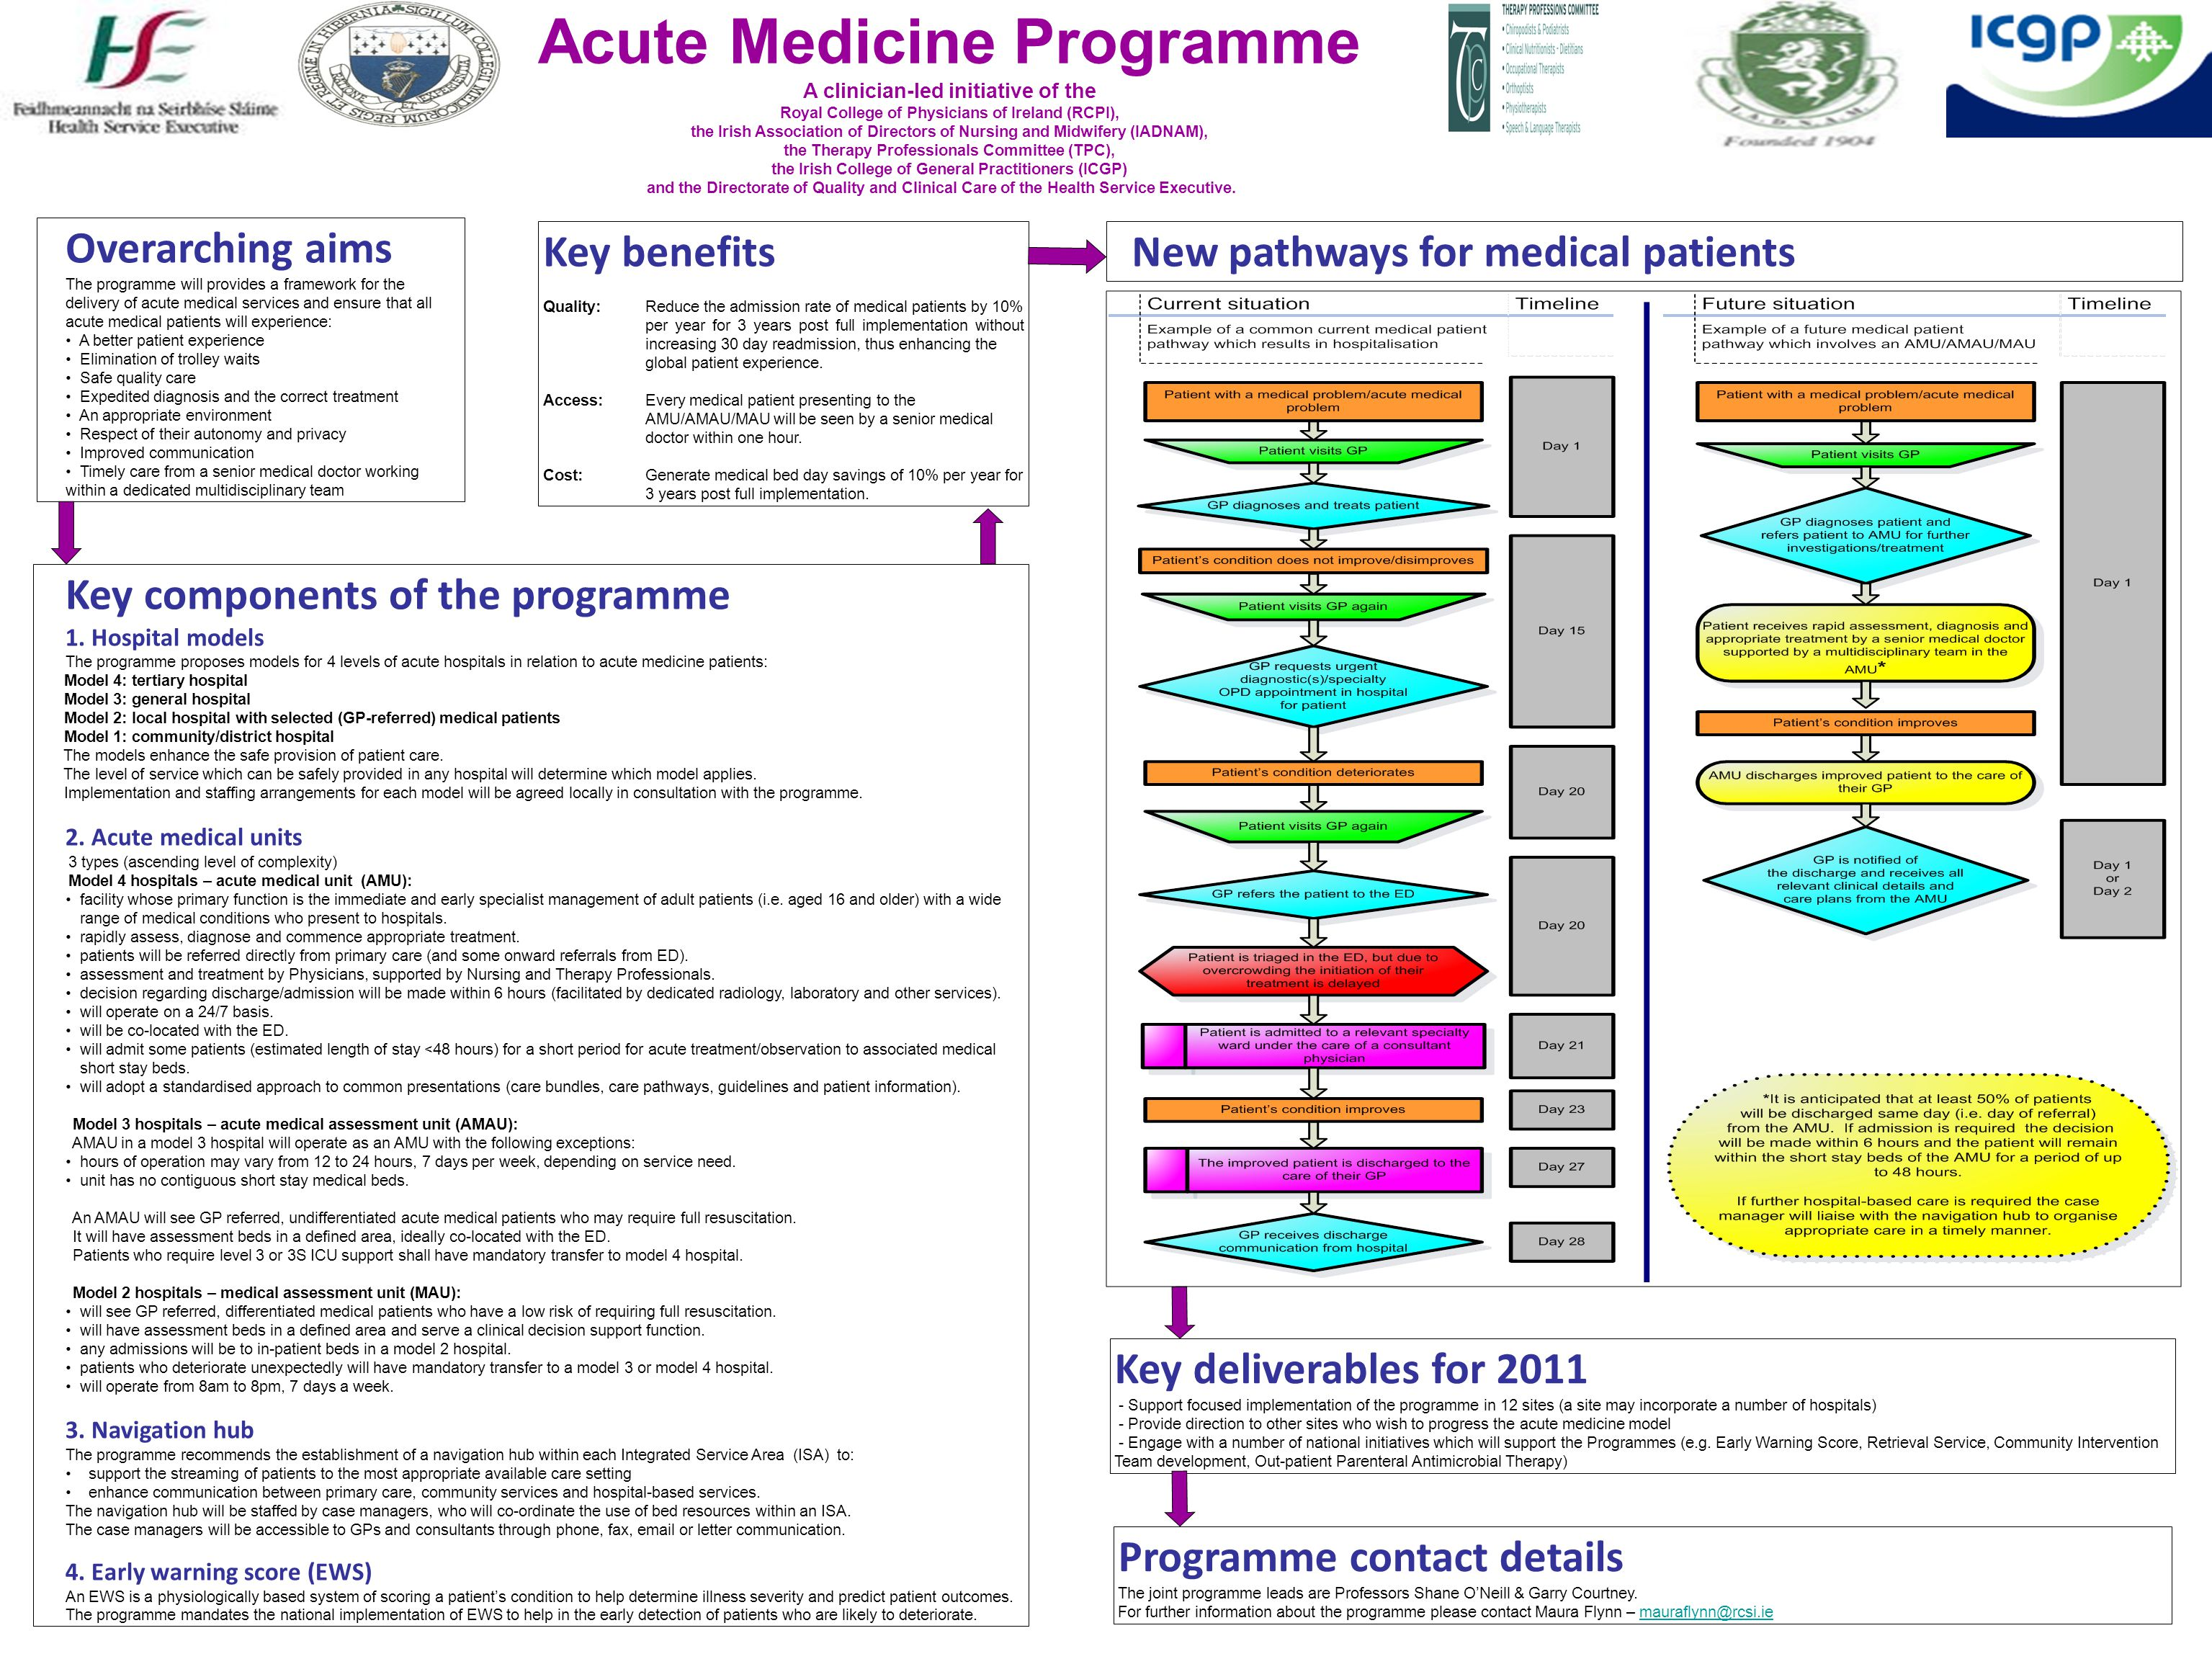 Acute Medicine Programme A clinician-led initiative of the Royal College of Physicians of Ireland (RCPI), the Irish Association of Directors of Nursing and Midwifery (IADNAM), the Therapy Professionals Committee (TPC), the Irish College of General Practitioners (ICGP) and the Directorate of Quality and Clinical Care of the Health Service Executive.